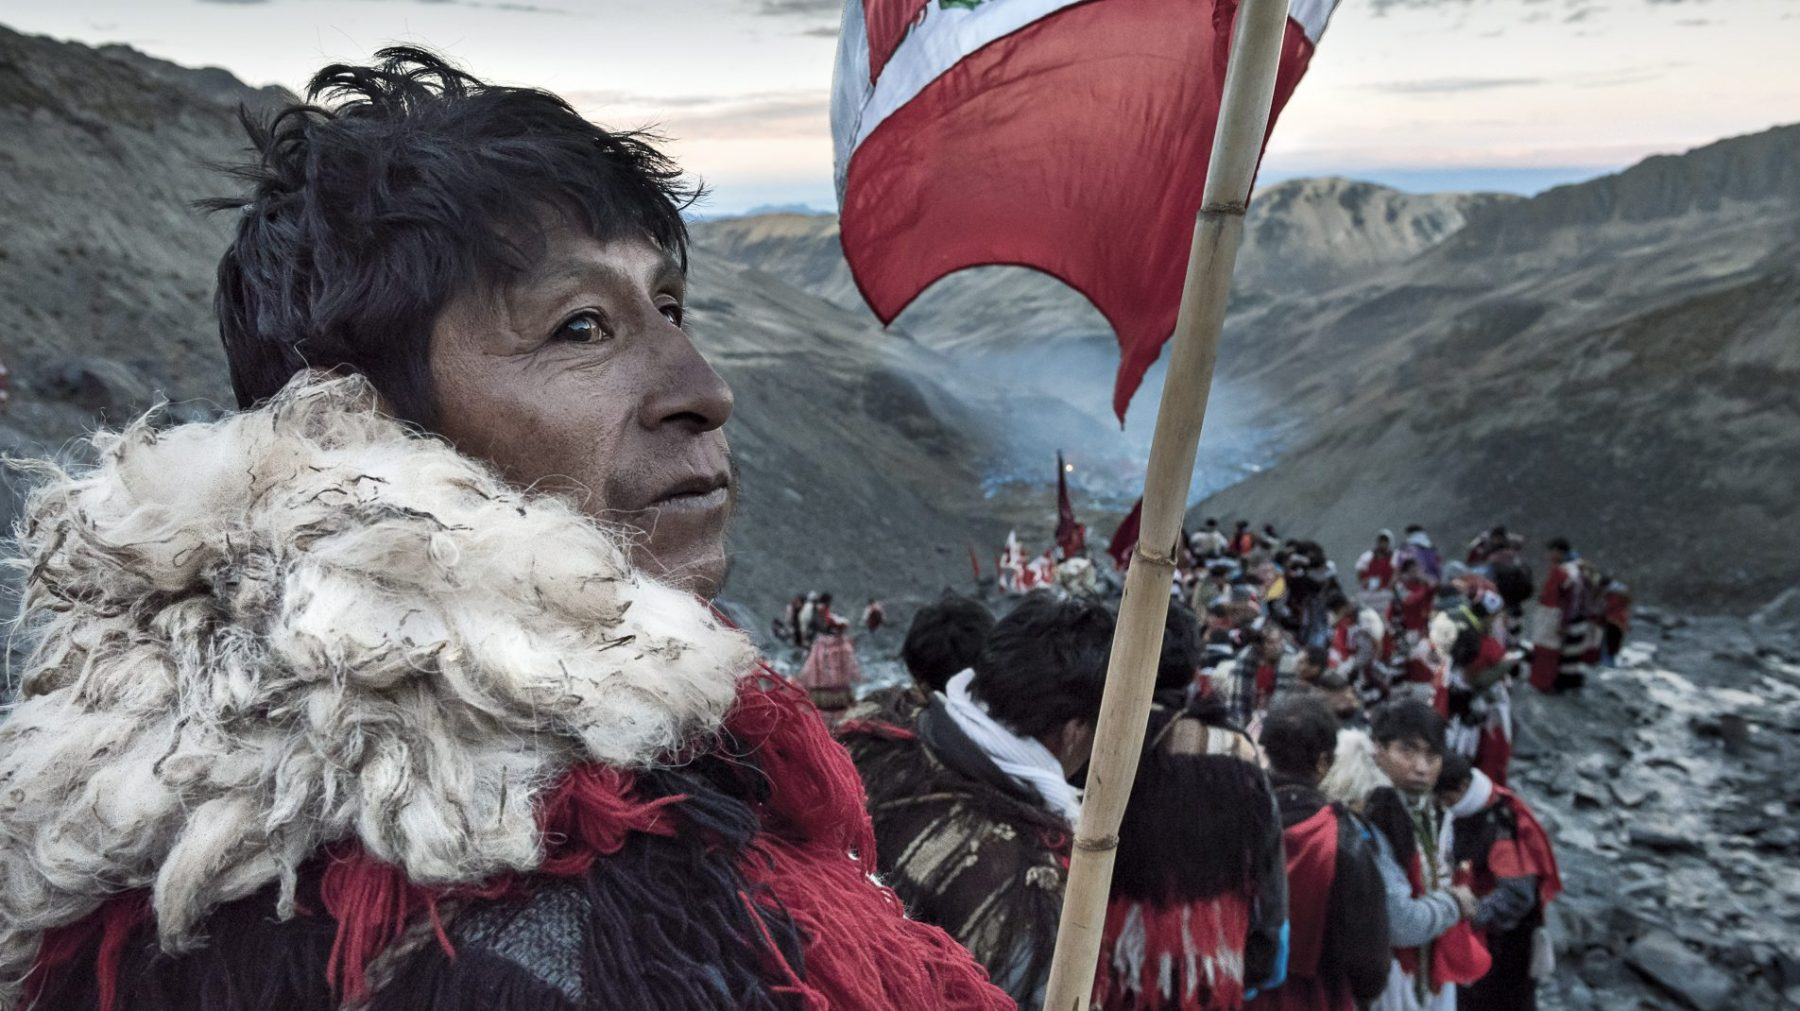 """""""Around 80,000 pilgrims descend upon the Sinakara Valley in the Peruvian Andes to celebrate the festival of Qoyllur Rit'i – a mixture of Inca and Catholic traditions. During the final night, bands of Ukukus head up to the holy glaciers at an altitude of 5,600m to perform initiation rituals. At dawn they descend back into the valley, carrying large crosses on their backs."""" (Christopher Roche)"""